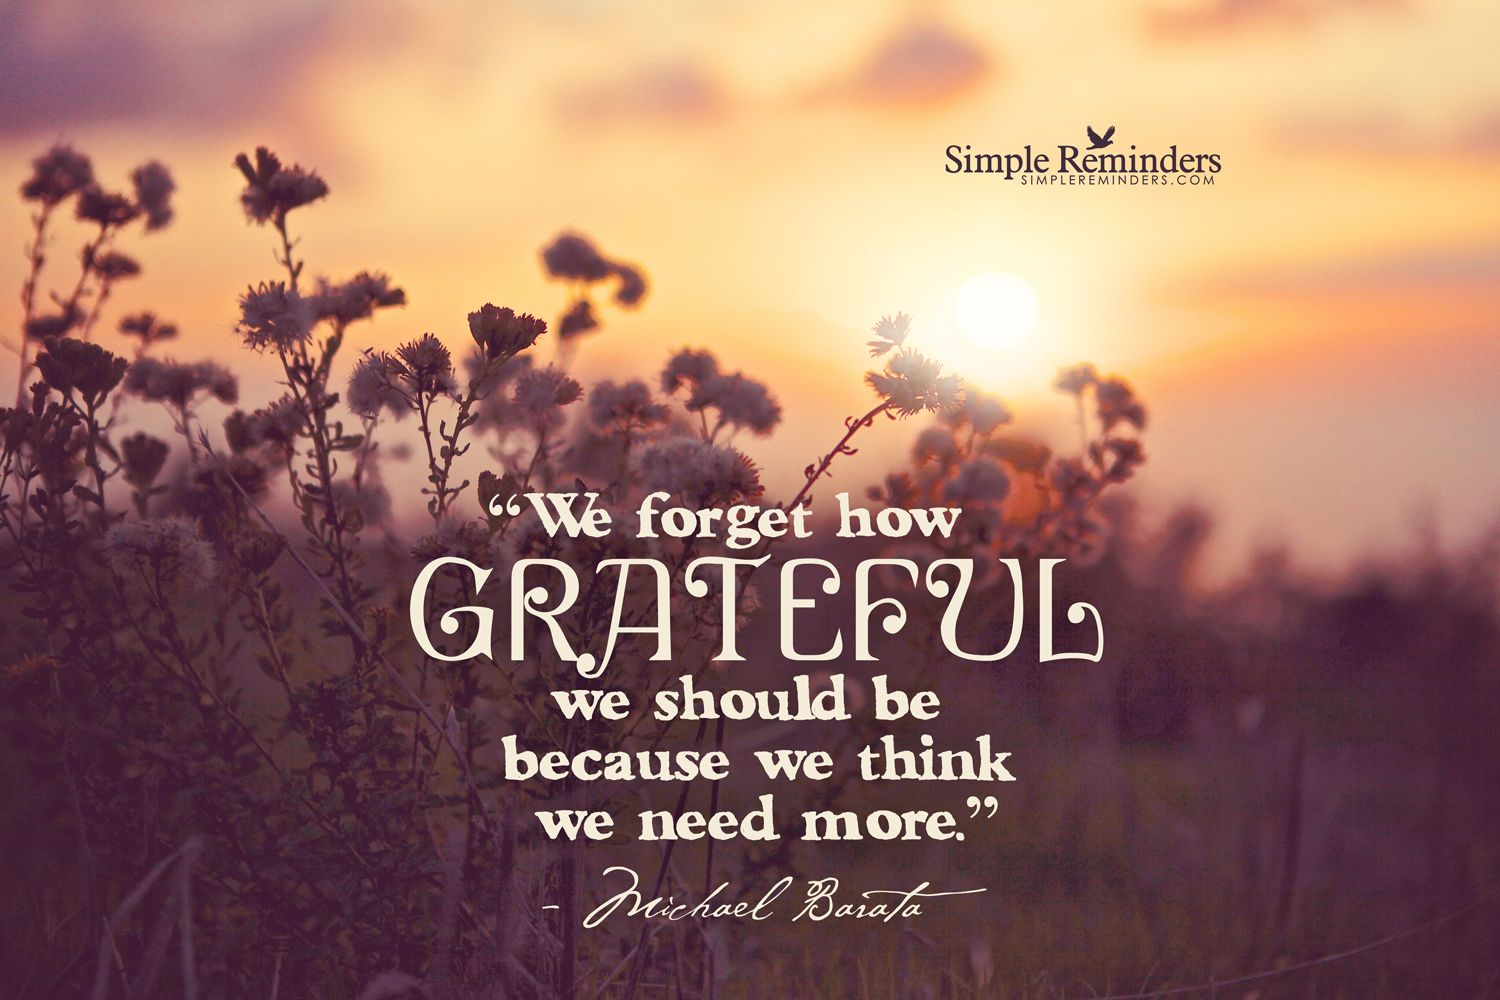 We forget how grateful we should be, because we think we need more. ~Michael Barata  #values #grateful #gratitude #thankful #enough #satisfied  @SIMPLE Comunicación Comunicación Reminders